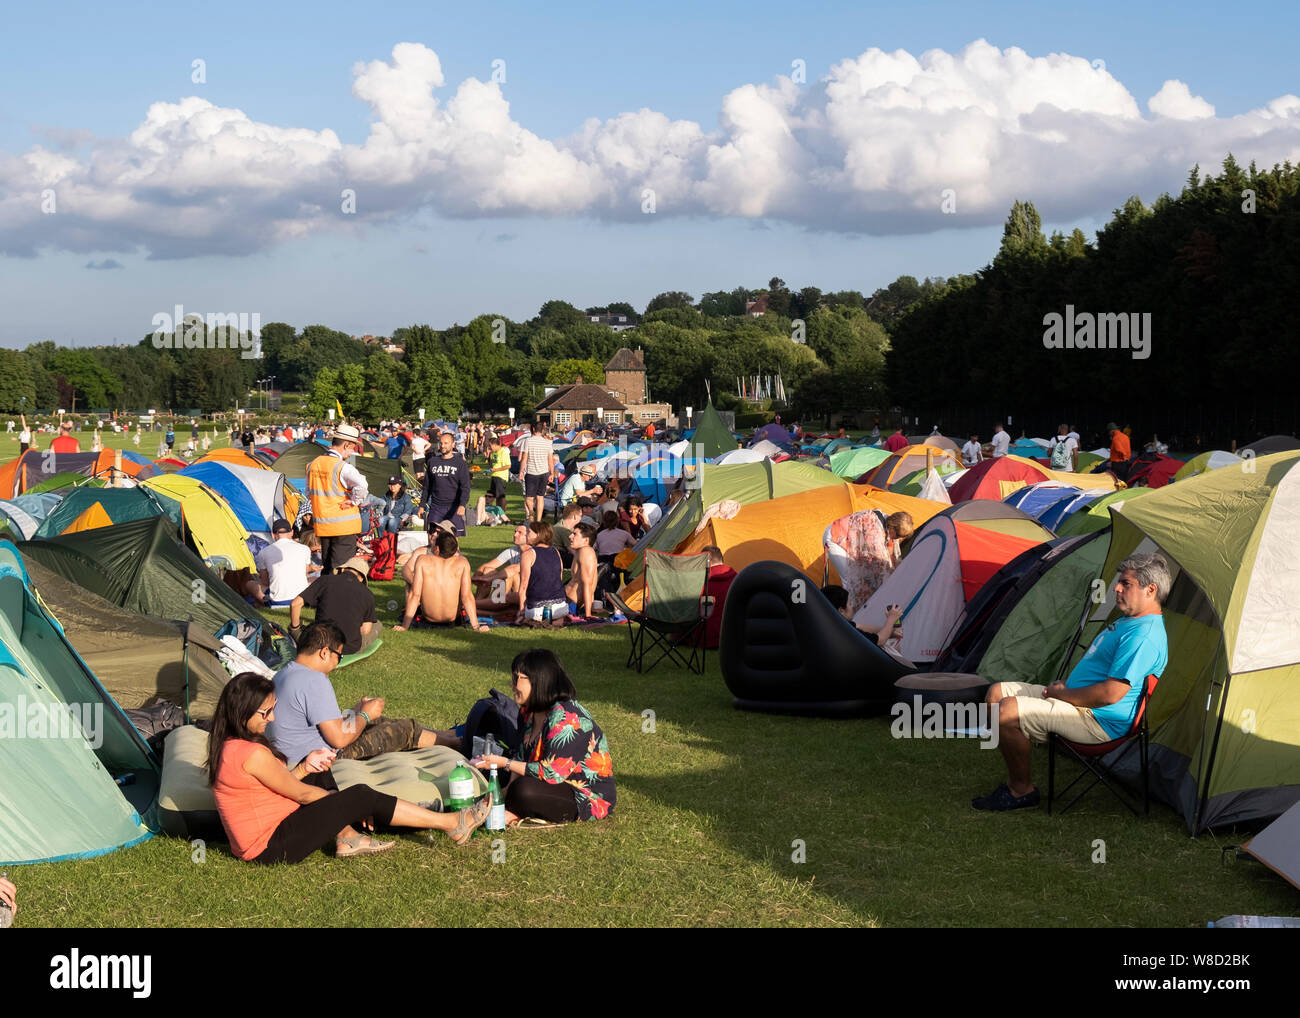 Tennis fans camping at the 2019 Wimbledon Championships, London, England, United Kingdom Stock Photo